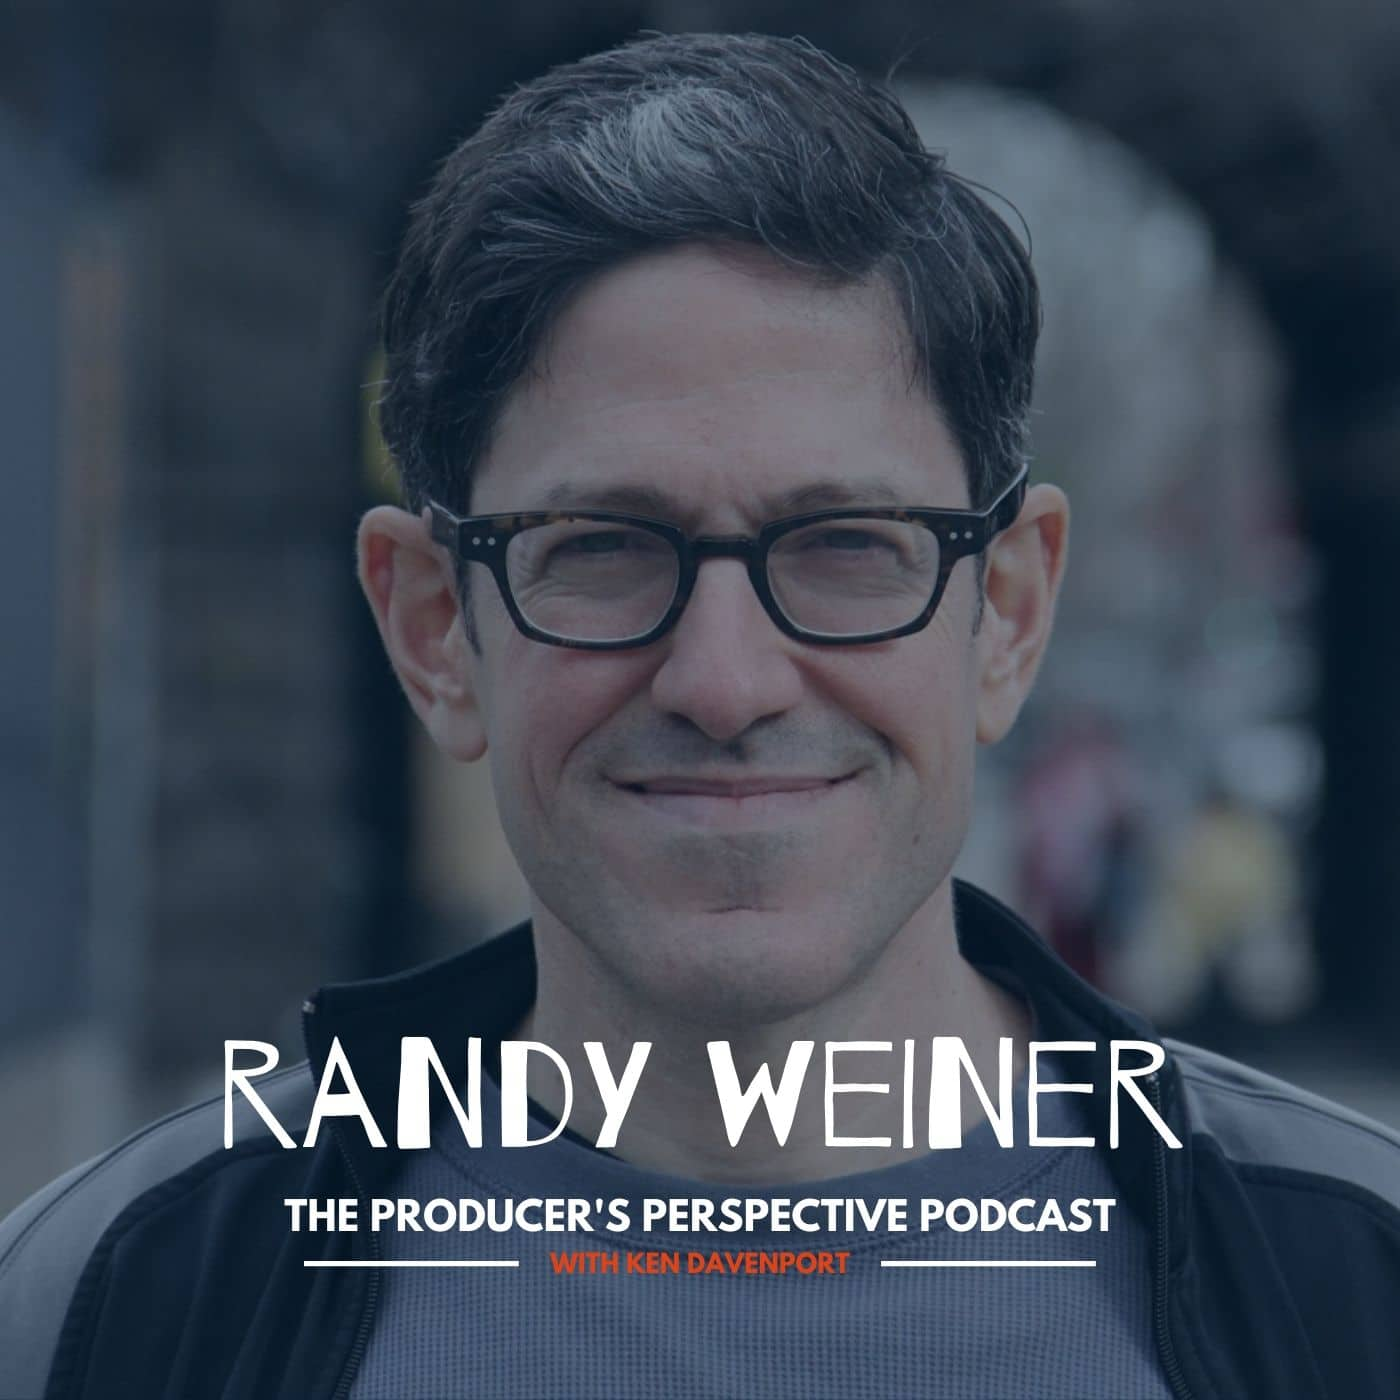 Ken Davenport's The Producer's Perspective Podcast Episode 95 - Randy Weiner